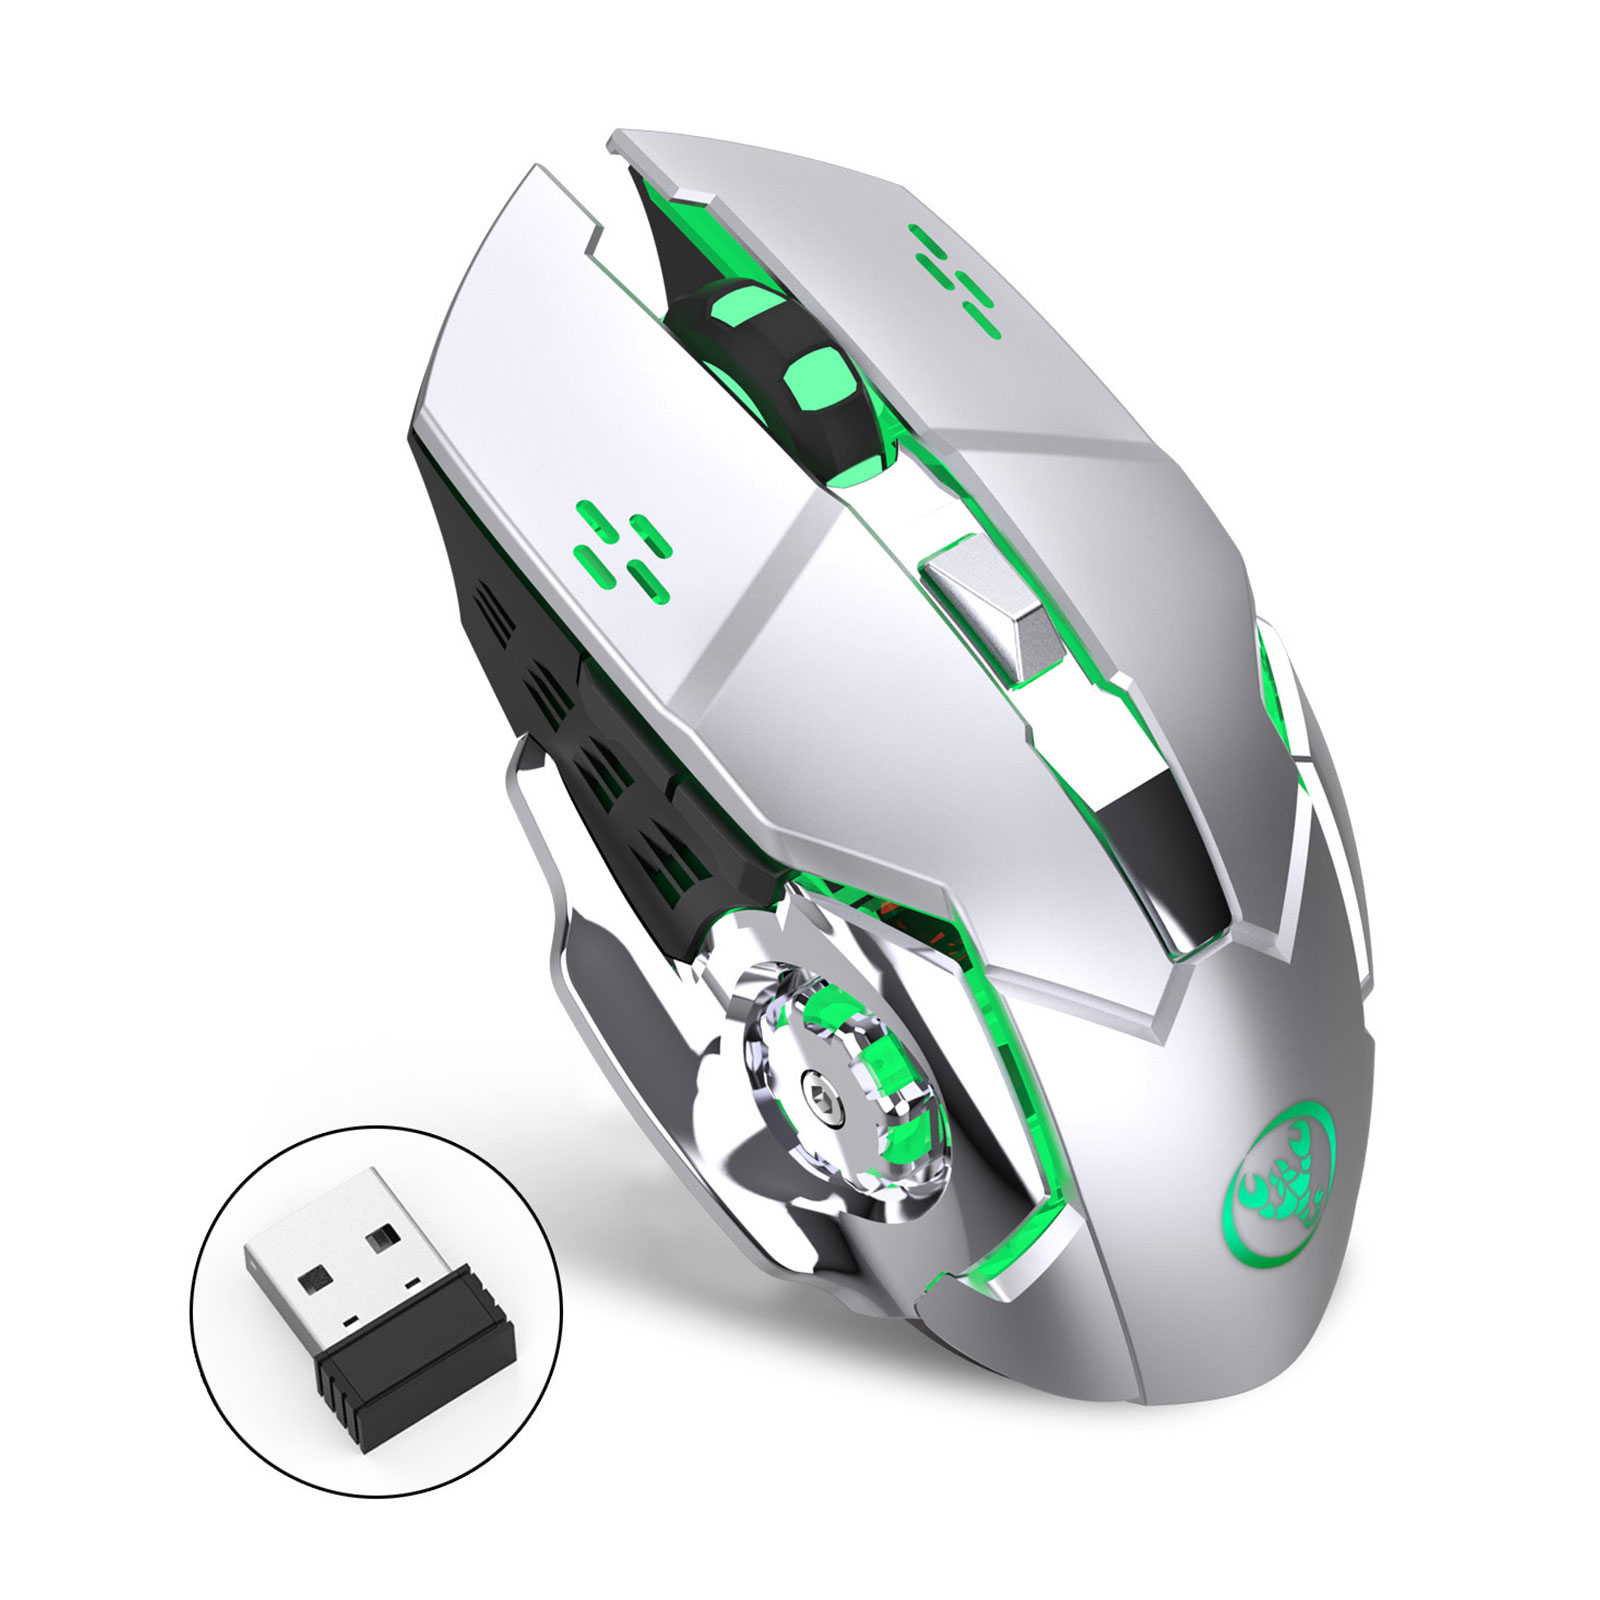 Wireless Optical Laptop Gaming Mouse Rechargeable Game Mice with USB Receiver, Color Changing, Rechargeable with 4 Adjustable CPI Levels for PC Laptop Computer Macbook  Gaming Players